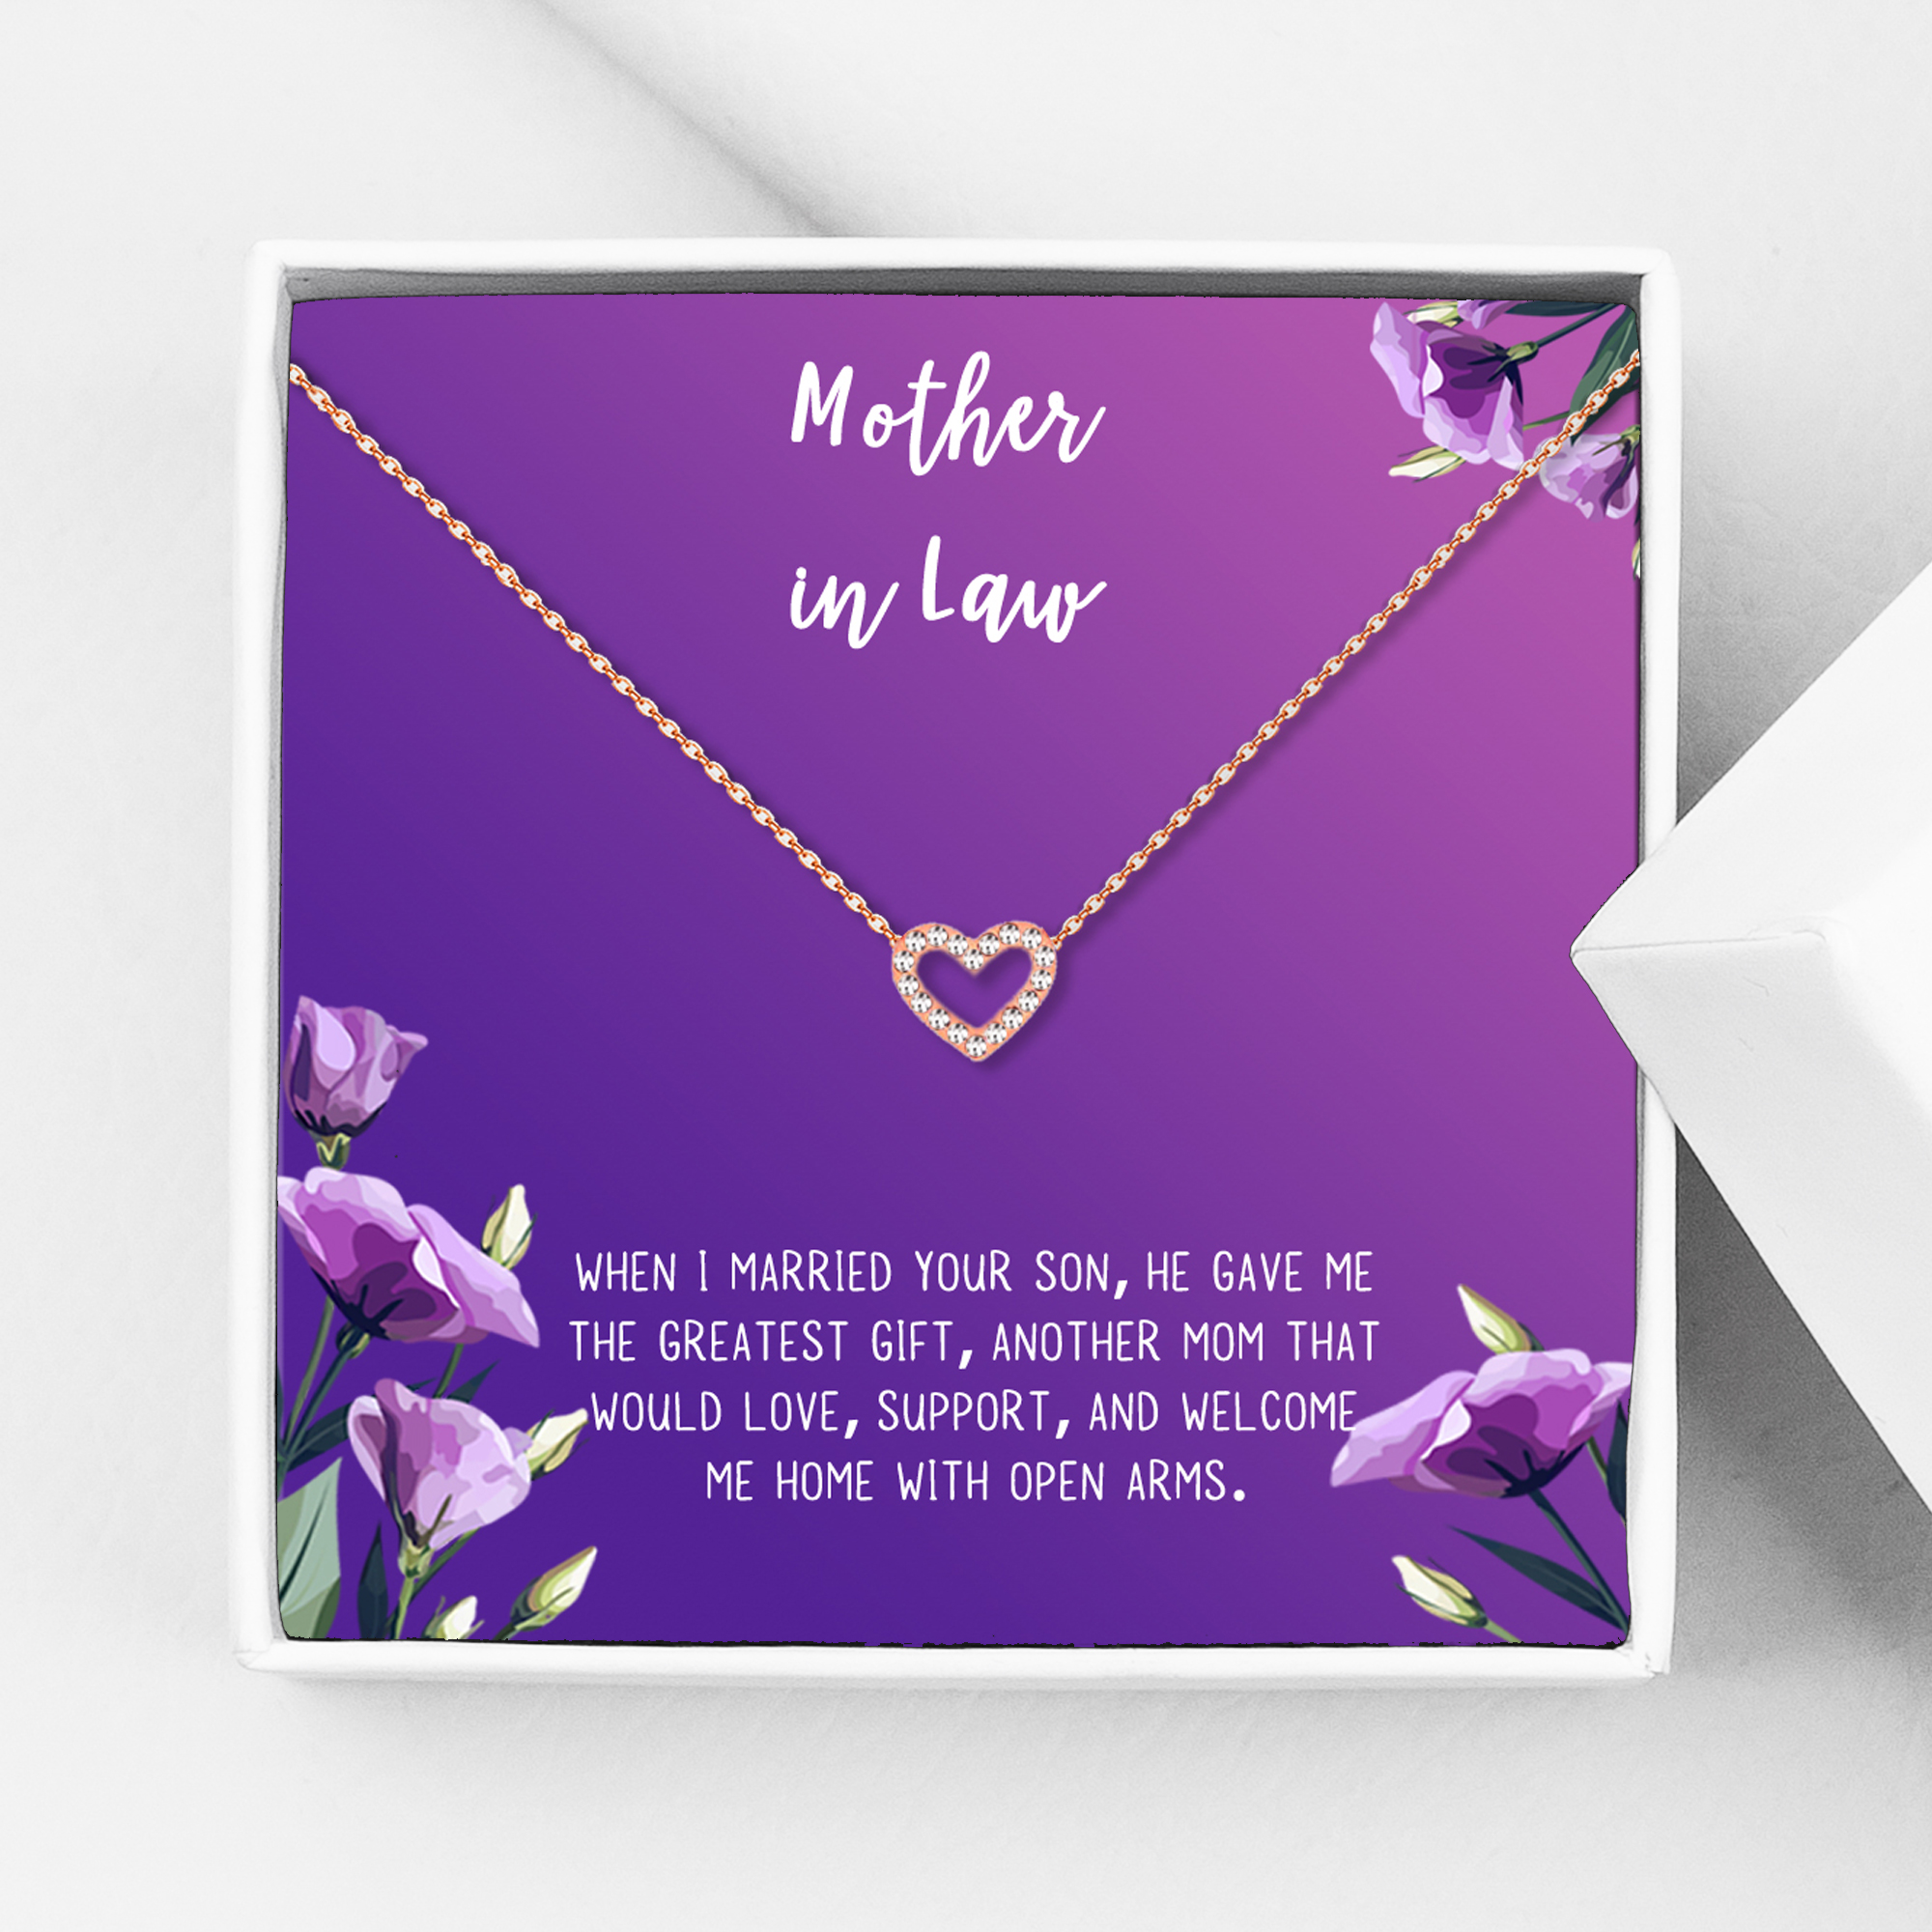 MOTHER Of The GROOM Gift From Bride Mother-In-Law Present Dainty Necklace On Personalized Card With Quote Mother In Law Gift Wedding Day